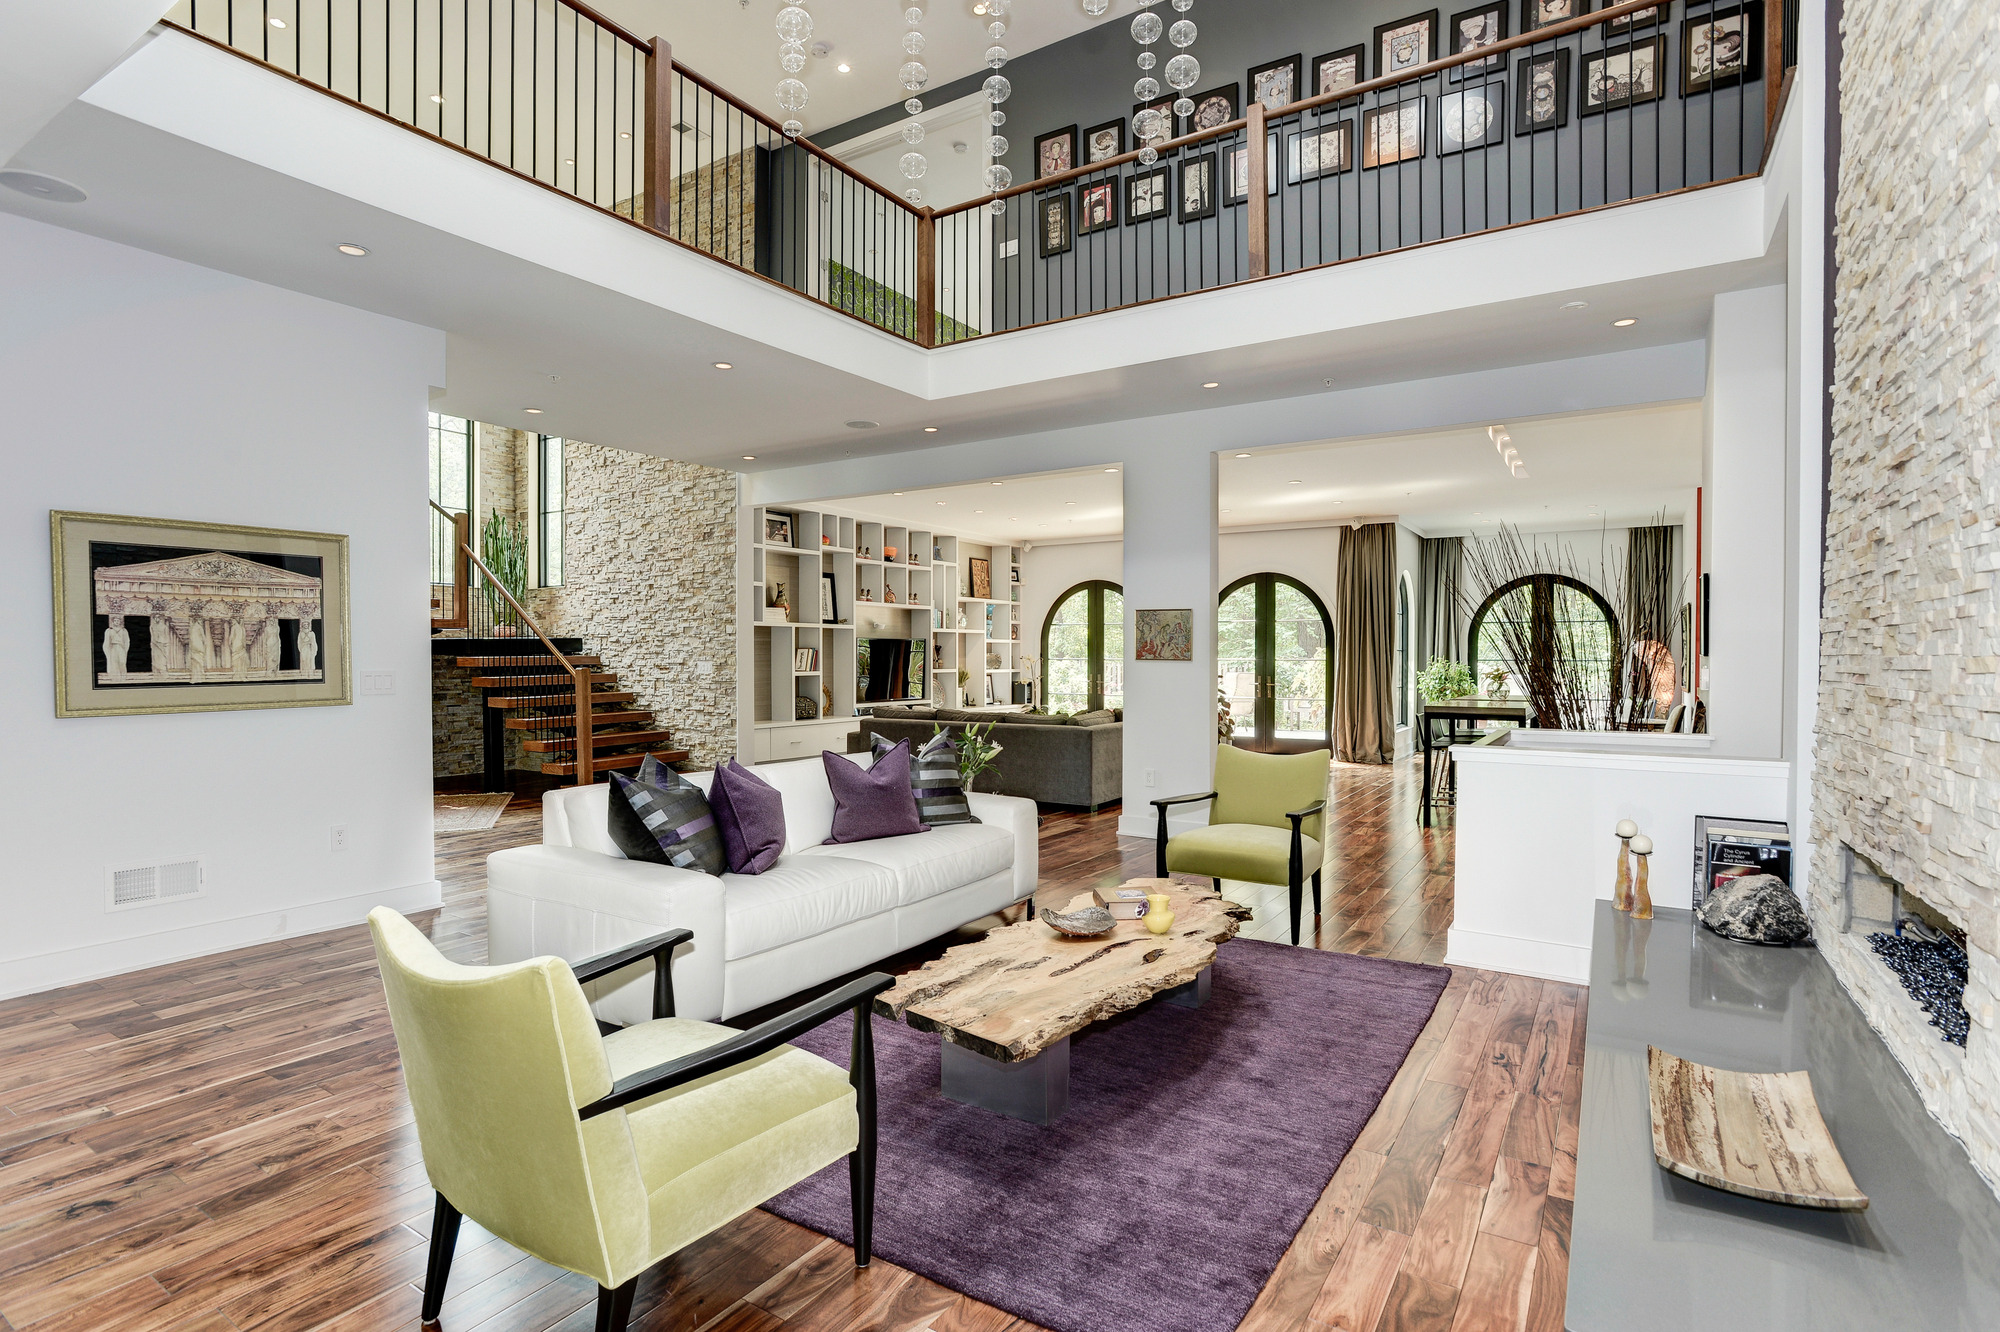 This five-bedroom/seven-bath contemporary home, which recently dropped in price by $150,000, is a rare find in Bethesda! Its European flair can be seen throughout the home from the Spanish cedar front door to the strong penchant for color, soaring ceilings and wide variety of natural materials and textures used. For example, the stacked stone walls and chimney and blonde accacia  wood floors truly create warmth not always associated with contemporary style. The open design is balanced by the aesthetically pleasing definition of spaces through use of architectural elements such as arched doors and windows. The two-story living room also draws the eye in, with a stacked stone fireplace (the stonework is angled for additional interest) and the built-in media wall in the family room is accented by contrasting textured treatments. The property is listed by Meg Percesepe and Alison Shutt of Washington Fine Properties, and is in a great location, situated between downtown Bethesda and Potomac Village. Tour the rest of the house in our gallery and visit WFP.com for more info on the property! (Image: HomeVisit)